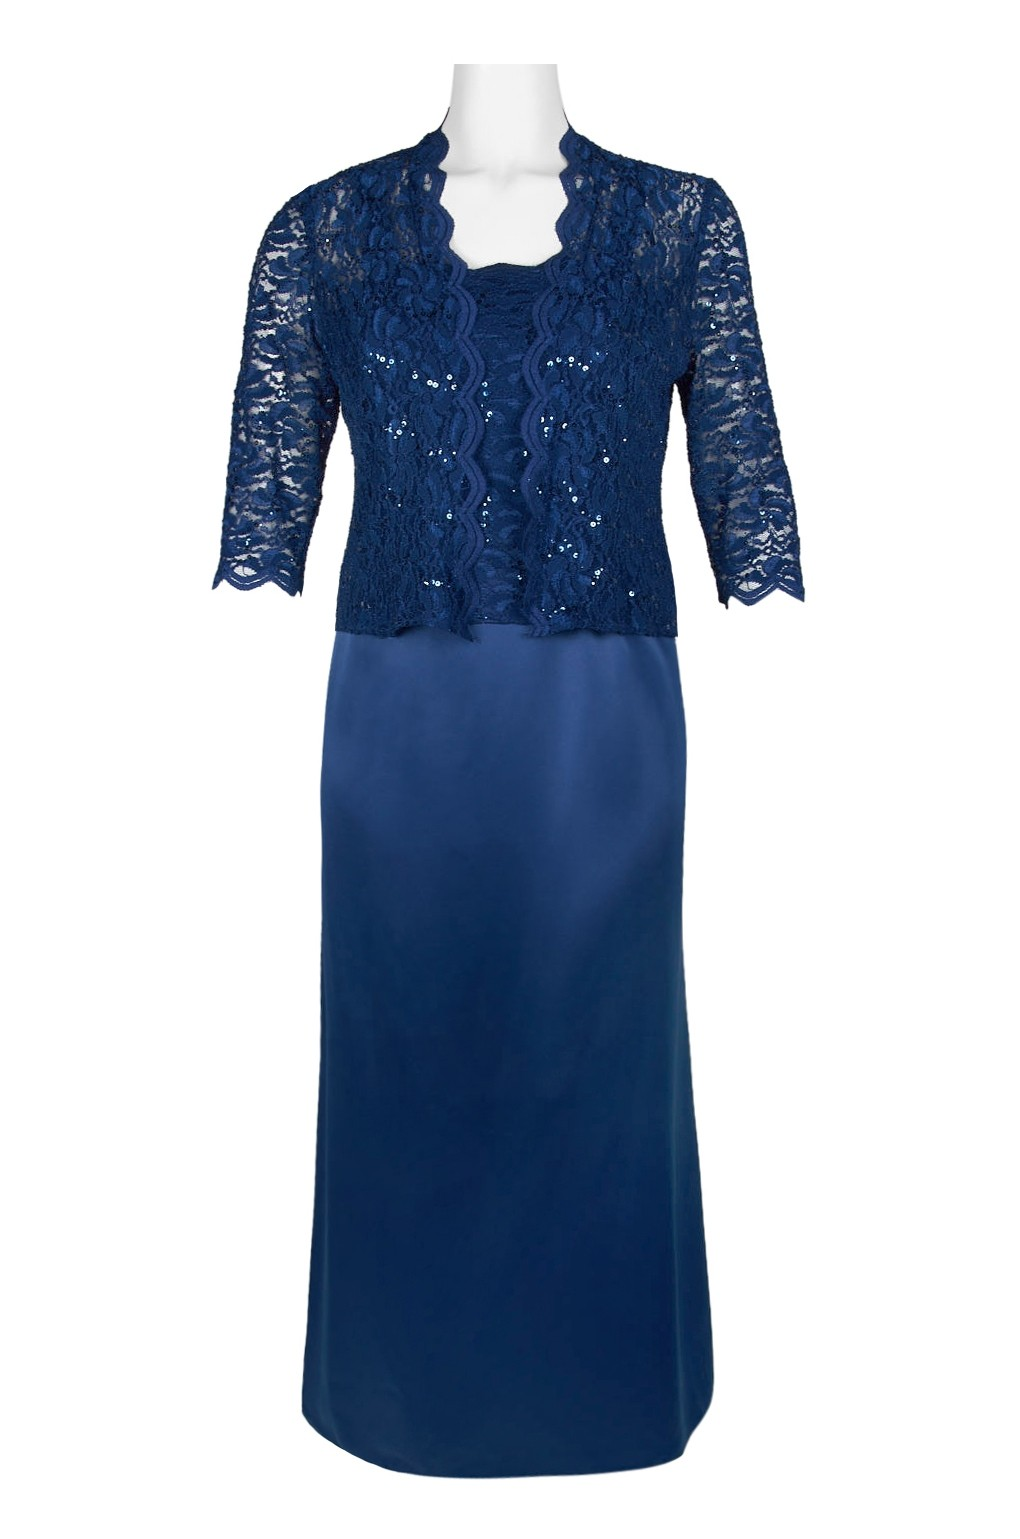 2e8a1c7fc2f Alex Evenings Scalloped Lace Bodice Satin Dress with 3 4 Sleeve Lace ...